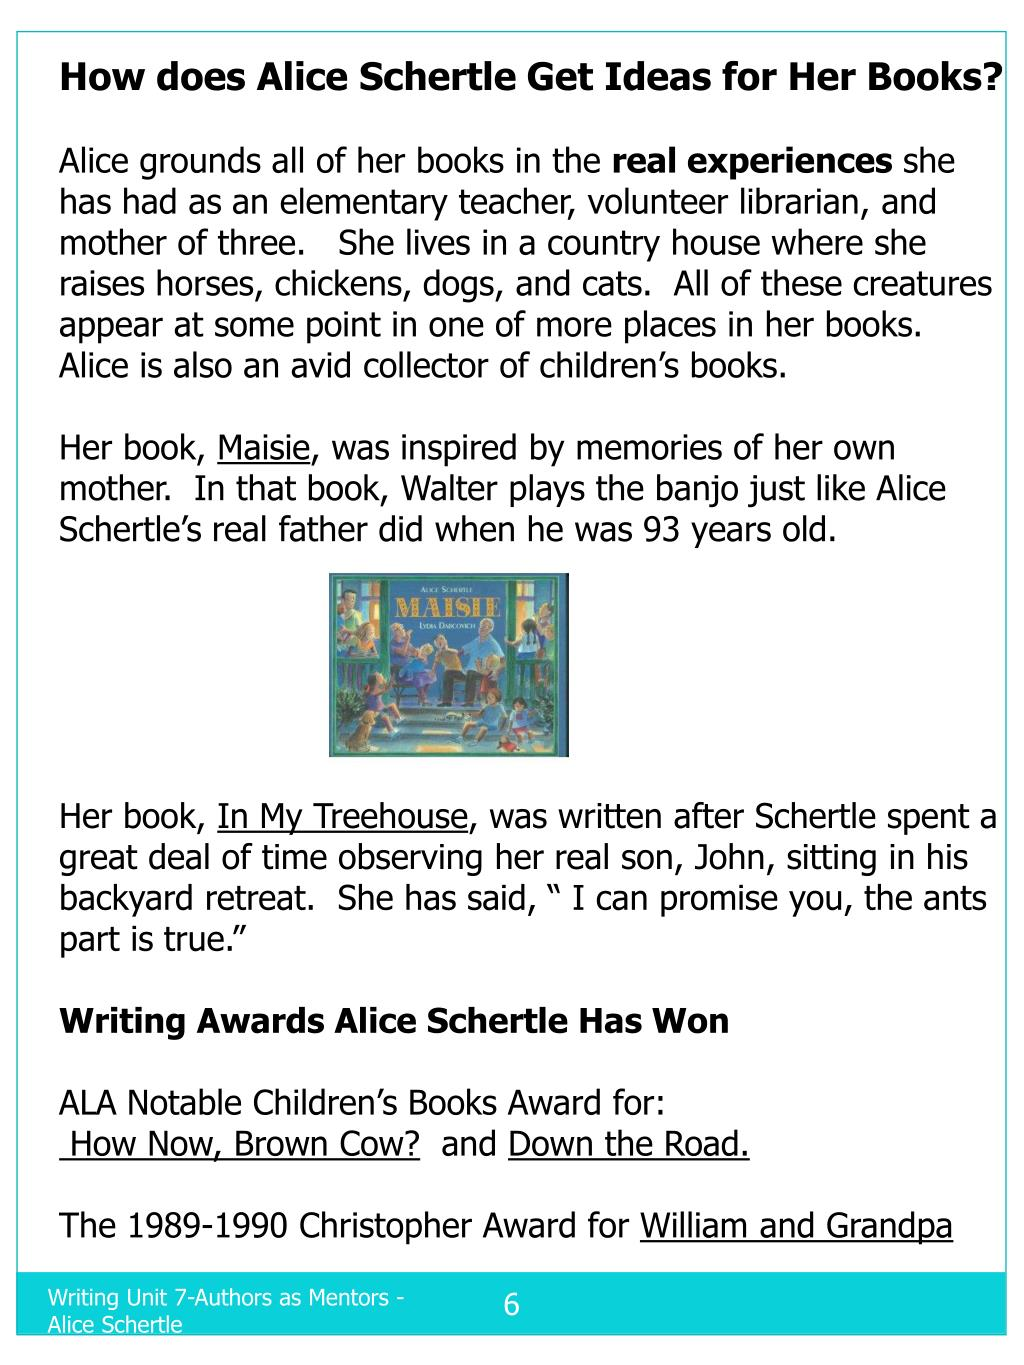 How does Alice Schertle Get Ideas for Her Books?